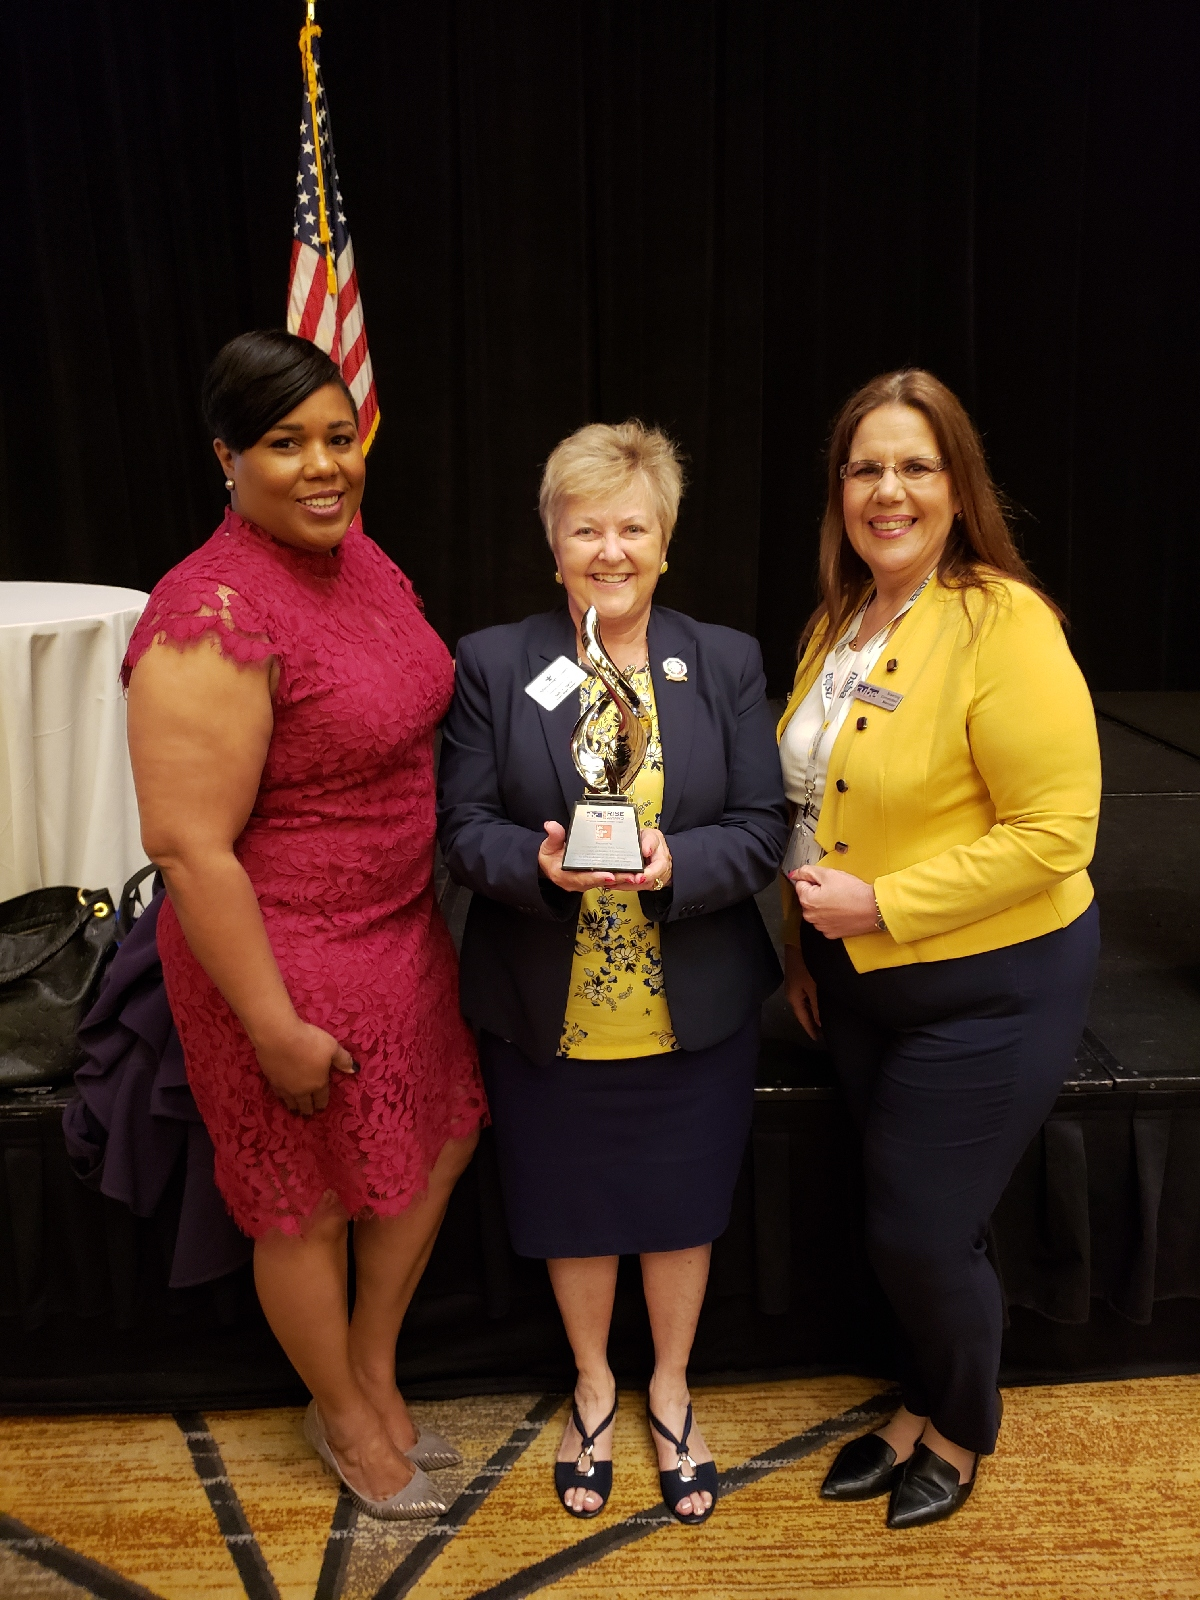 School Board Vice Chair Tamara Shamburger, School Board Chair Sally Harris and School Board Member Susan Valdes accept the RISE award.